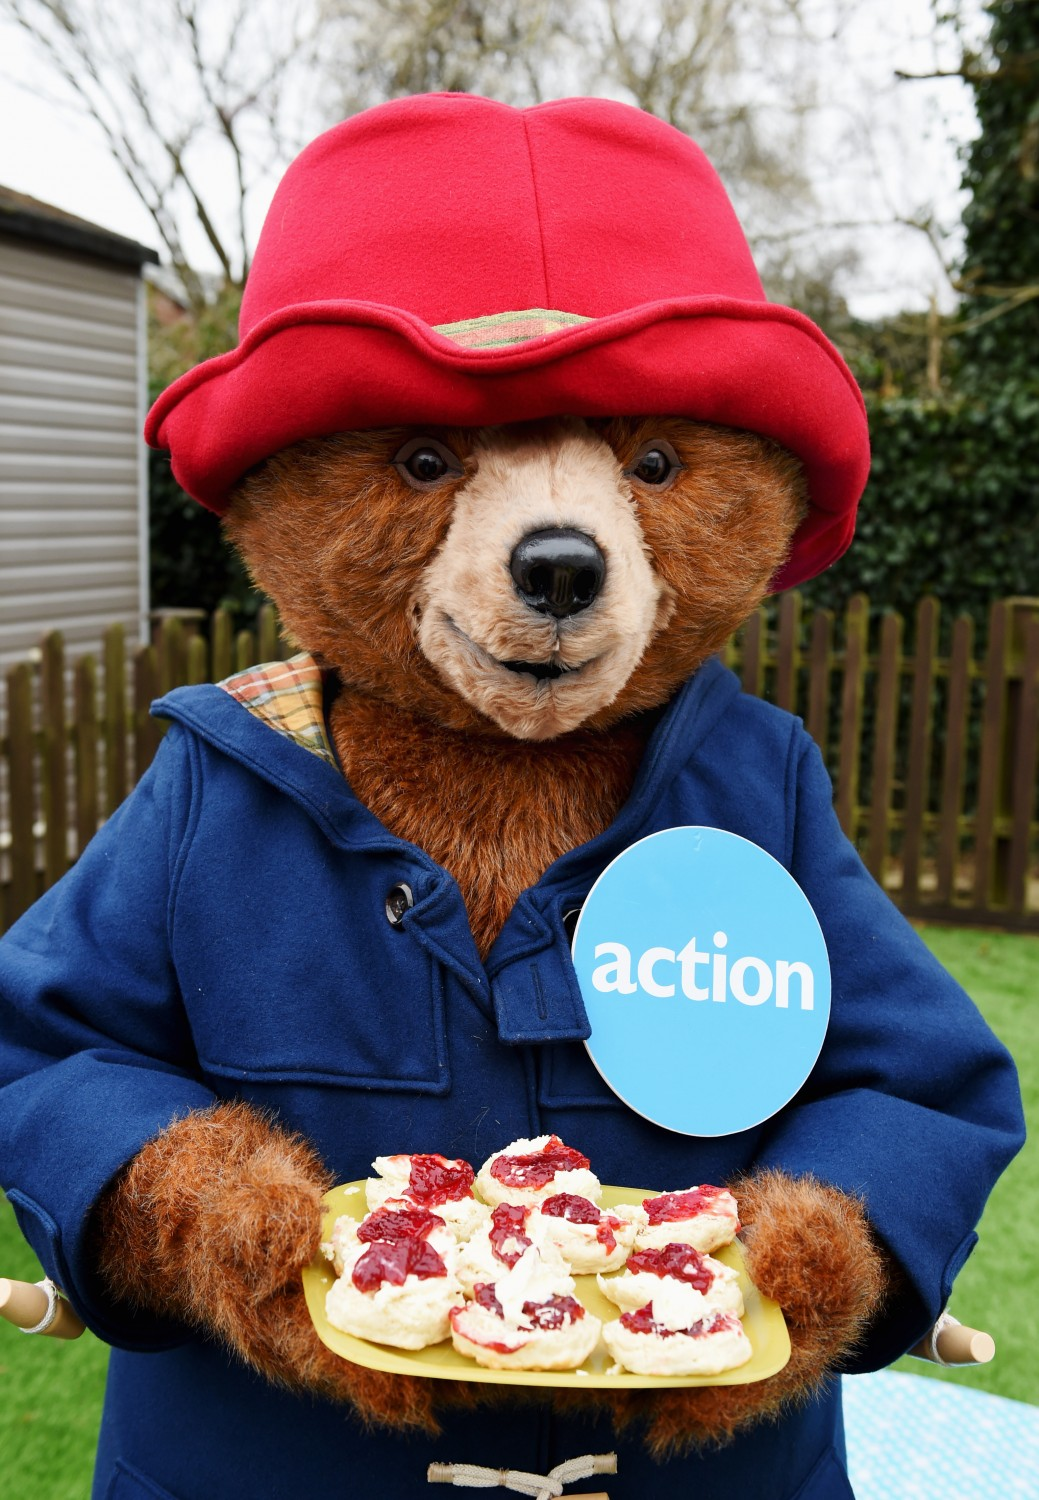 Paddington came with cream teas 2016